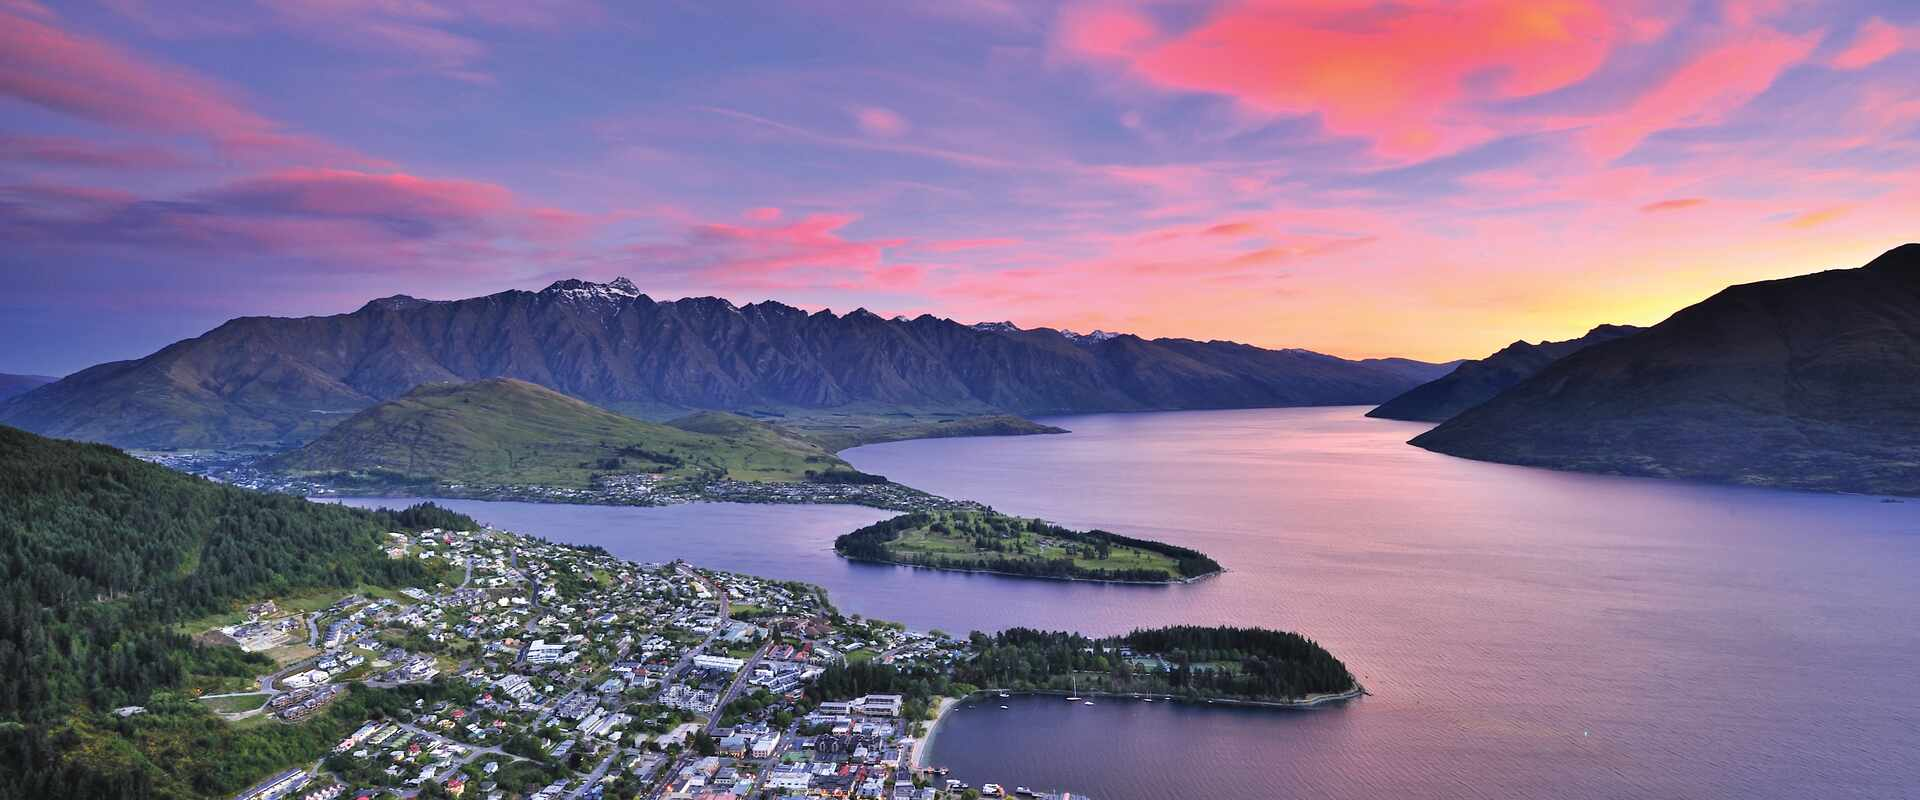 Aerial view over Lake Wakatipu and Queenstown lakesie town at sunset